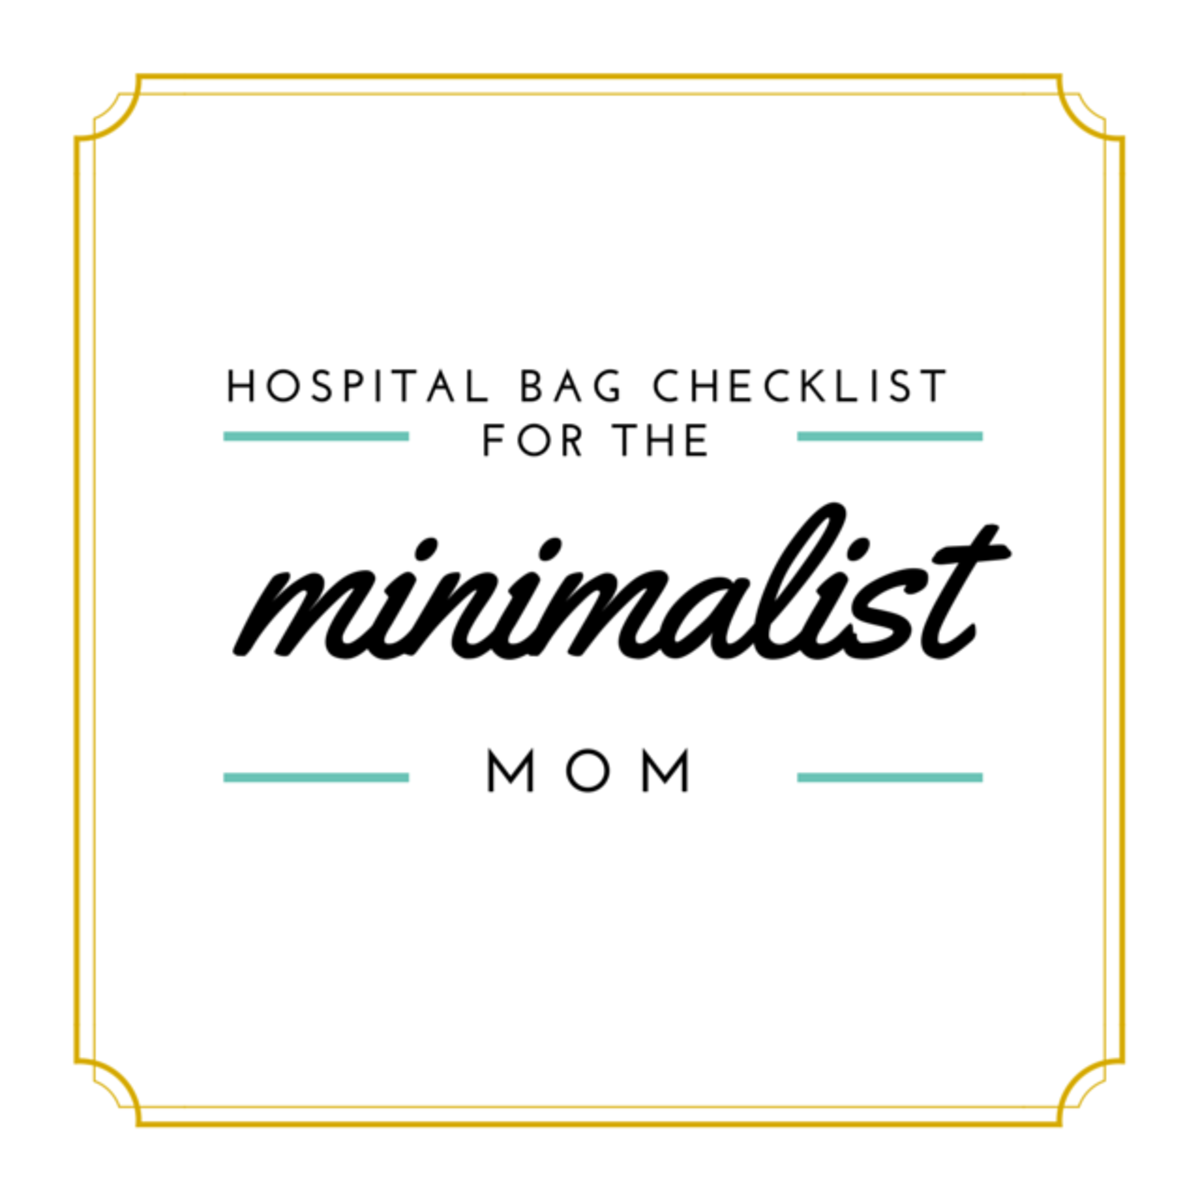 picture about Printable Hospital Bag Checklist for Labor and Delivery titled Medical center Bag Record for the Minimalist Mother WeHaveKids